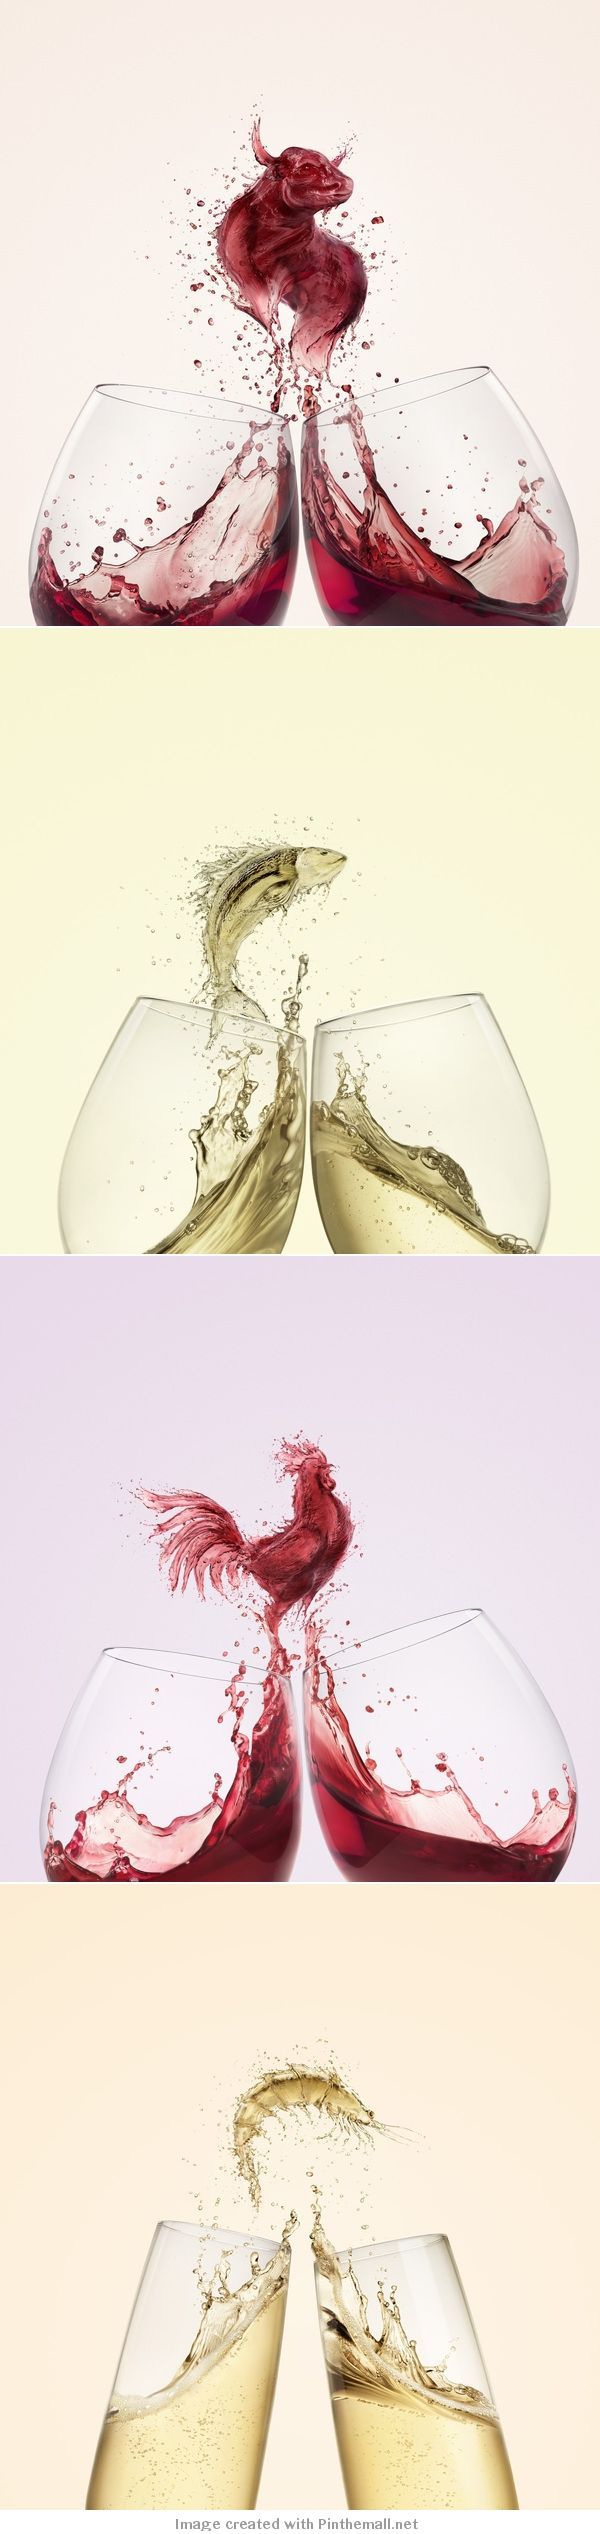 Aurora Wines - Marcus James http://www.behance.net/gallery/Aurora-Wines-Marcus-James/5538029